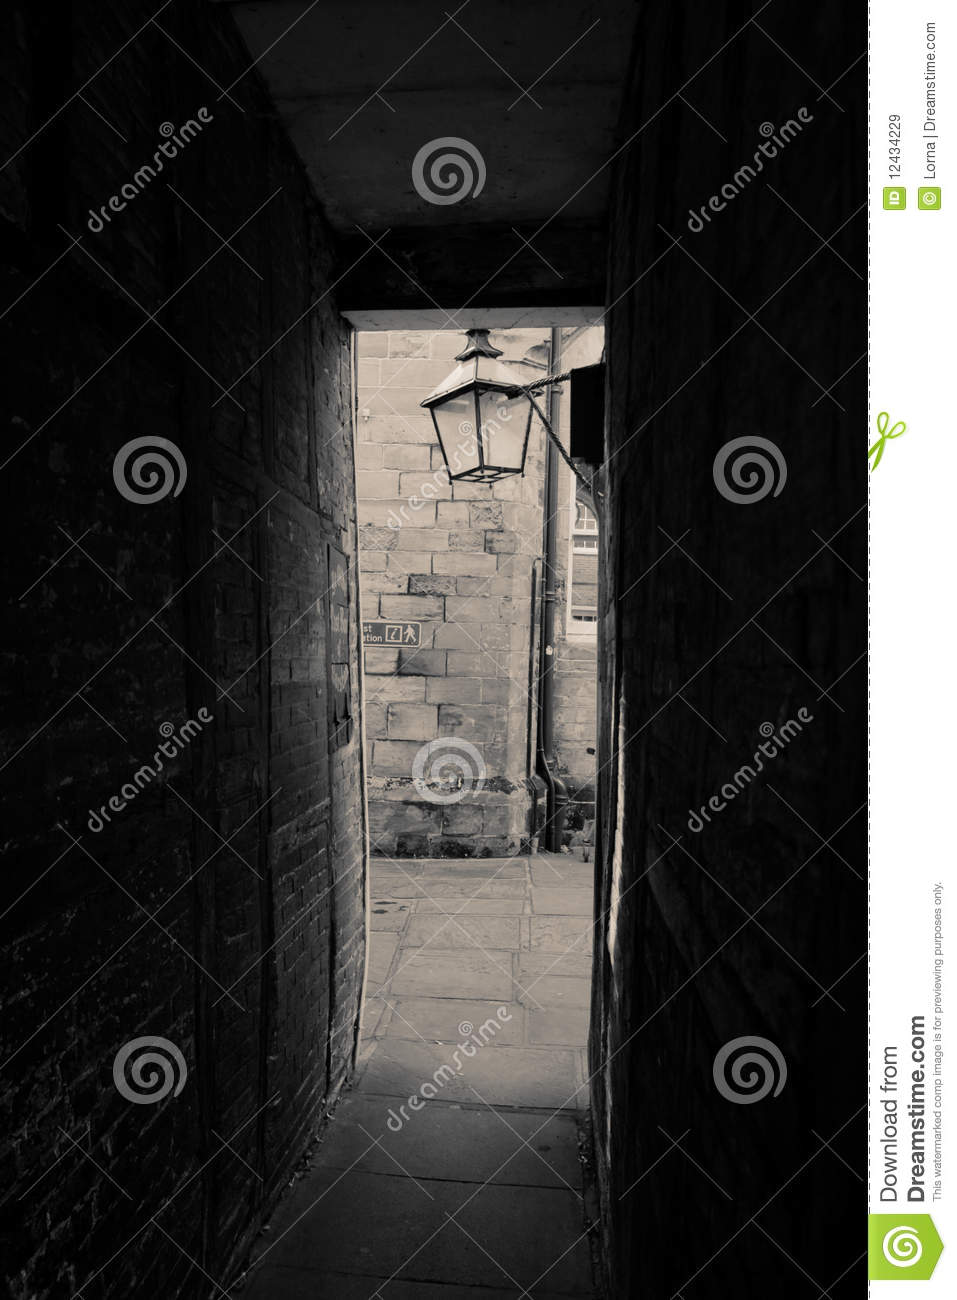 Pathway alley architecture stock image. Image of ...